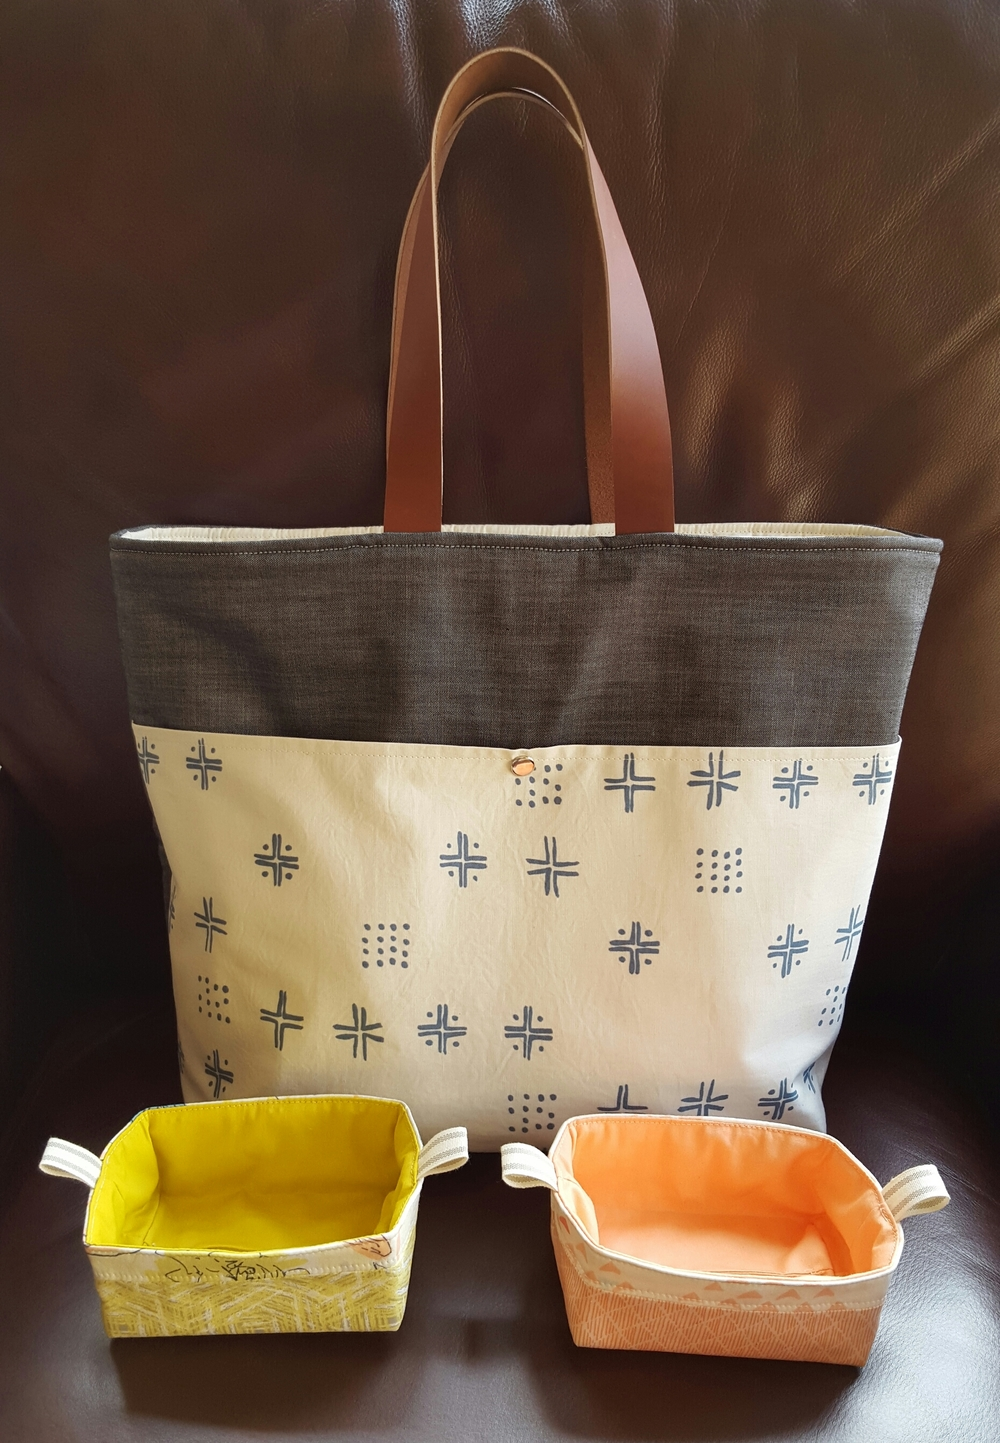 Bag and baskets made by Heidi Staples of Fabricmutt